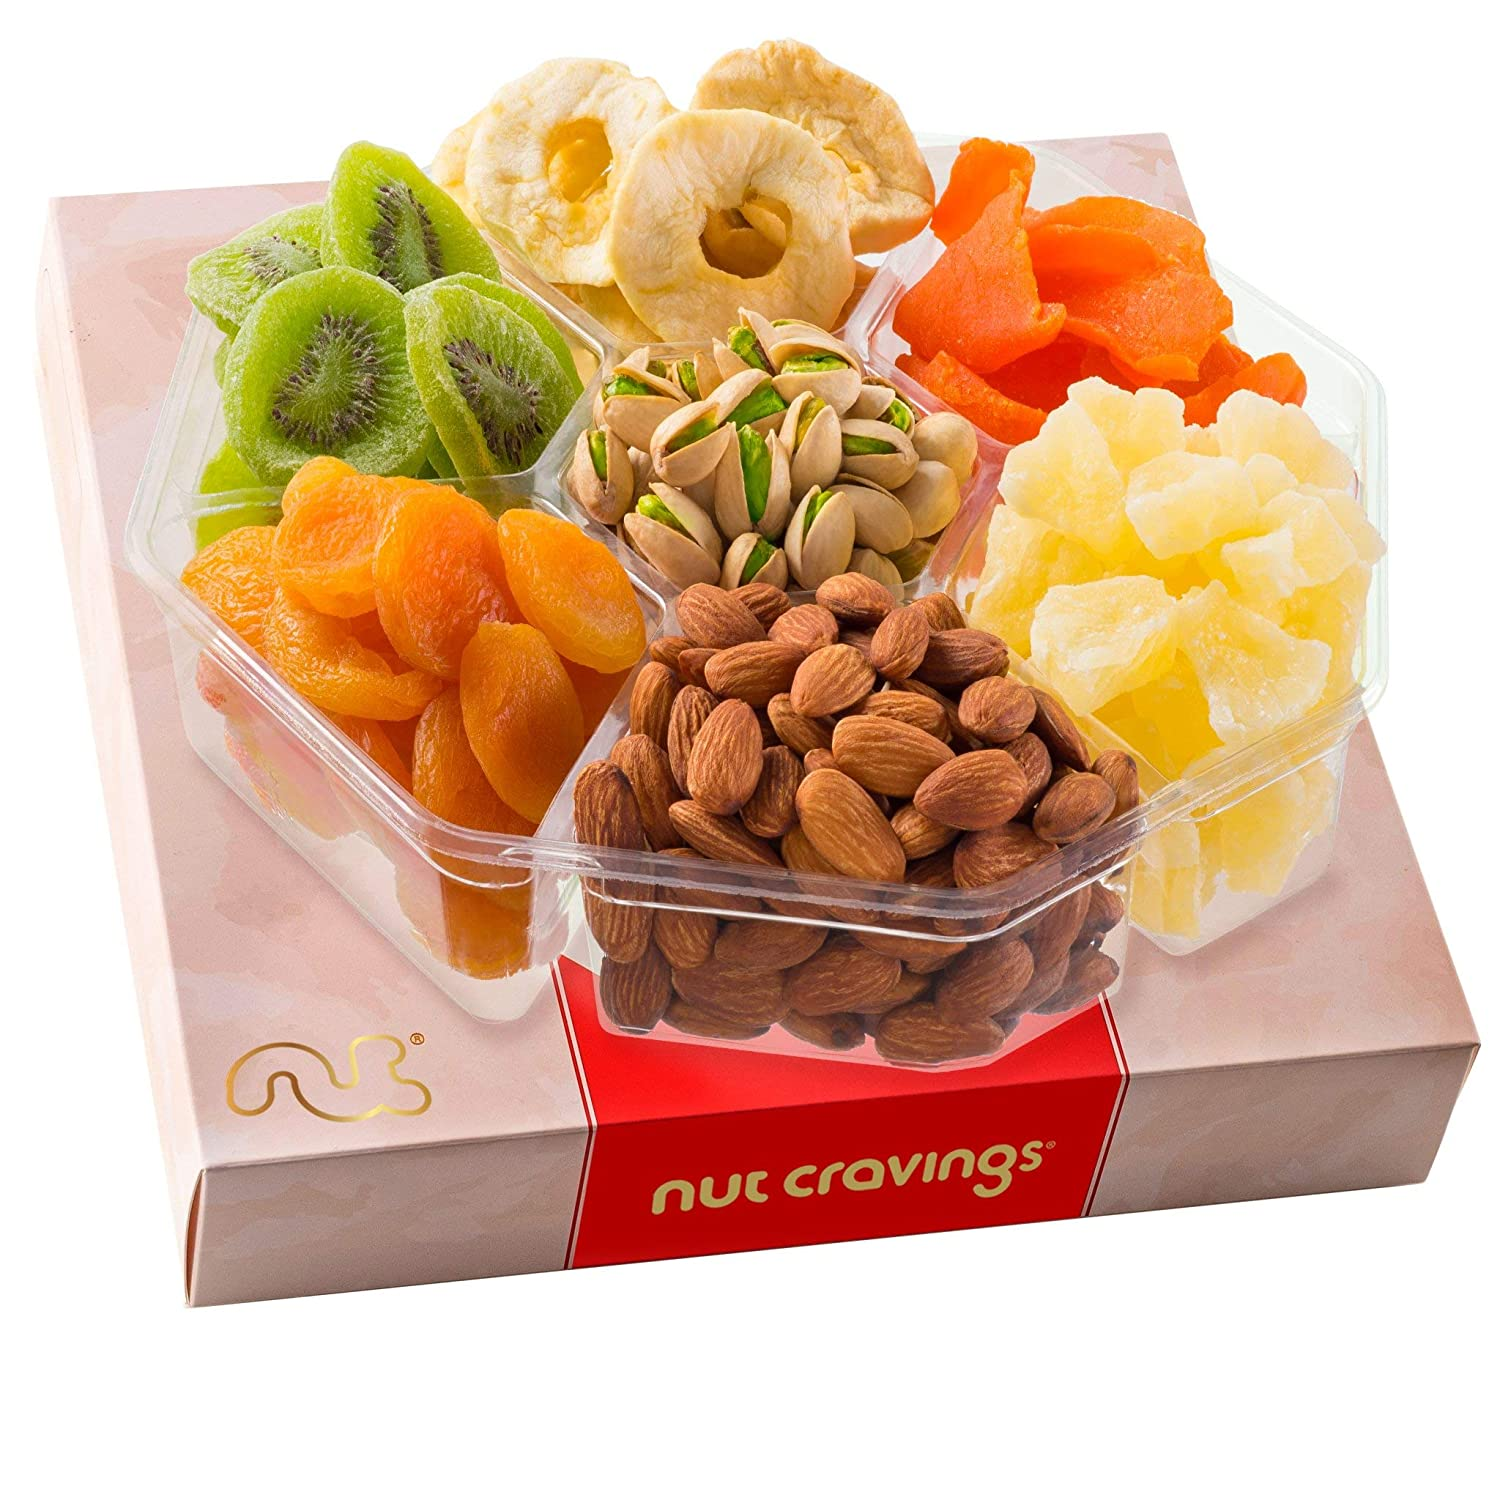 Dried Fruit Nut Max 64% OFF Gift Basket in 2 Piece Assortment Red ! Super beauty product restock quality top! 7 Box